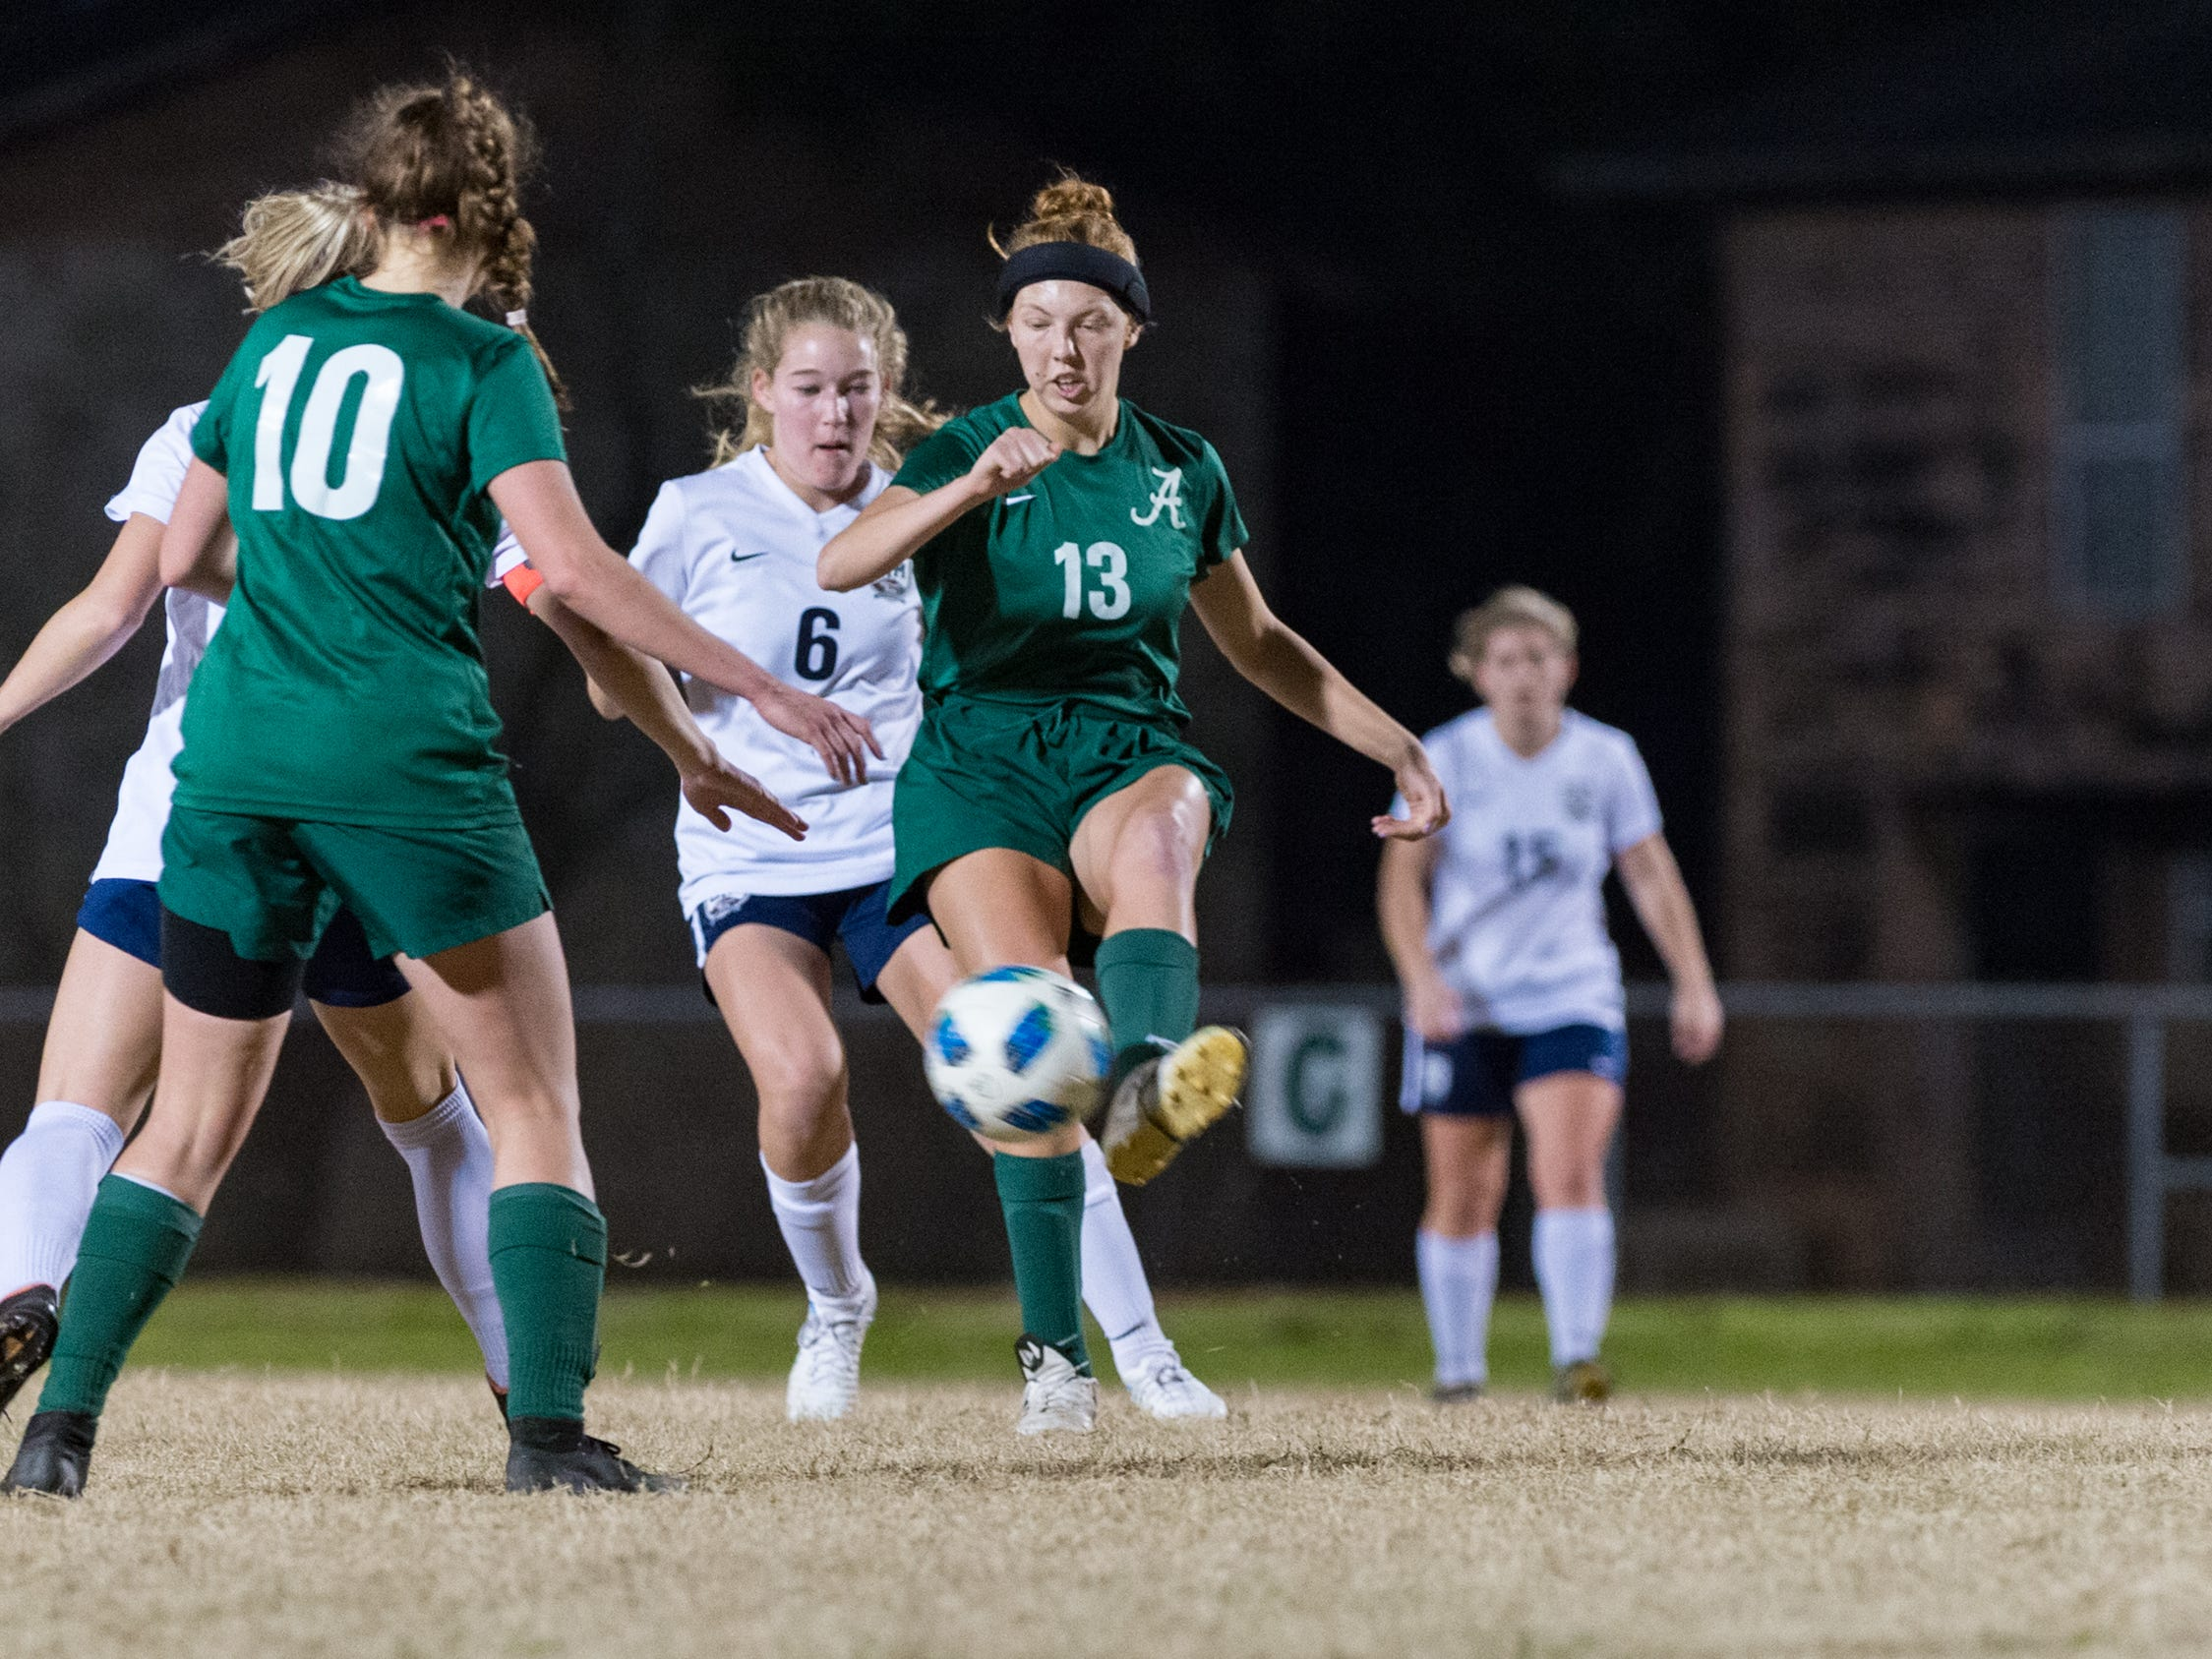 Emma Young passes the ball as Acadiana takes on STM girls soccer. Monday, Jan. 28, 2019.